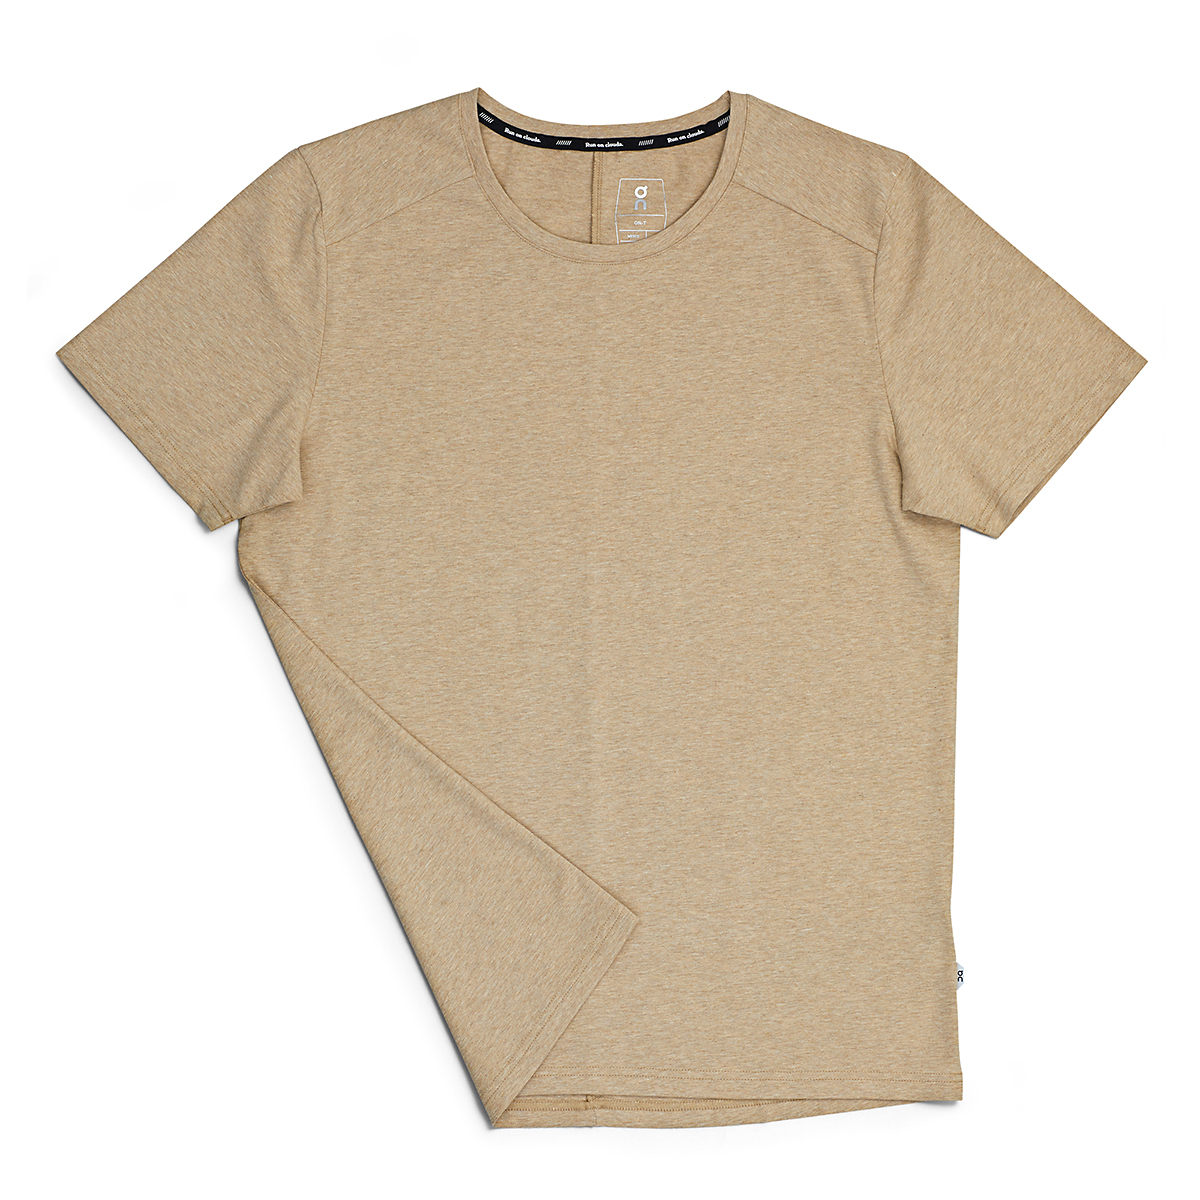 Men's On On-T Short Sleeve Shirt - Color: Camel - Size: XS, Camel, large, image 3